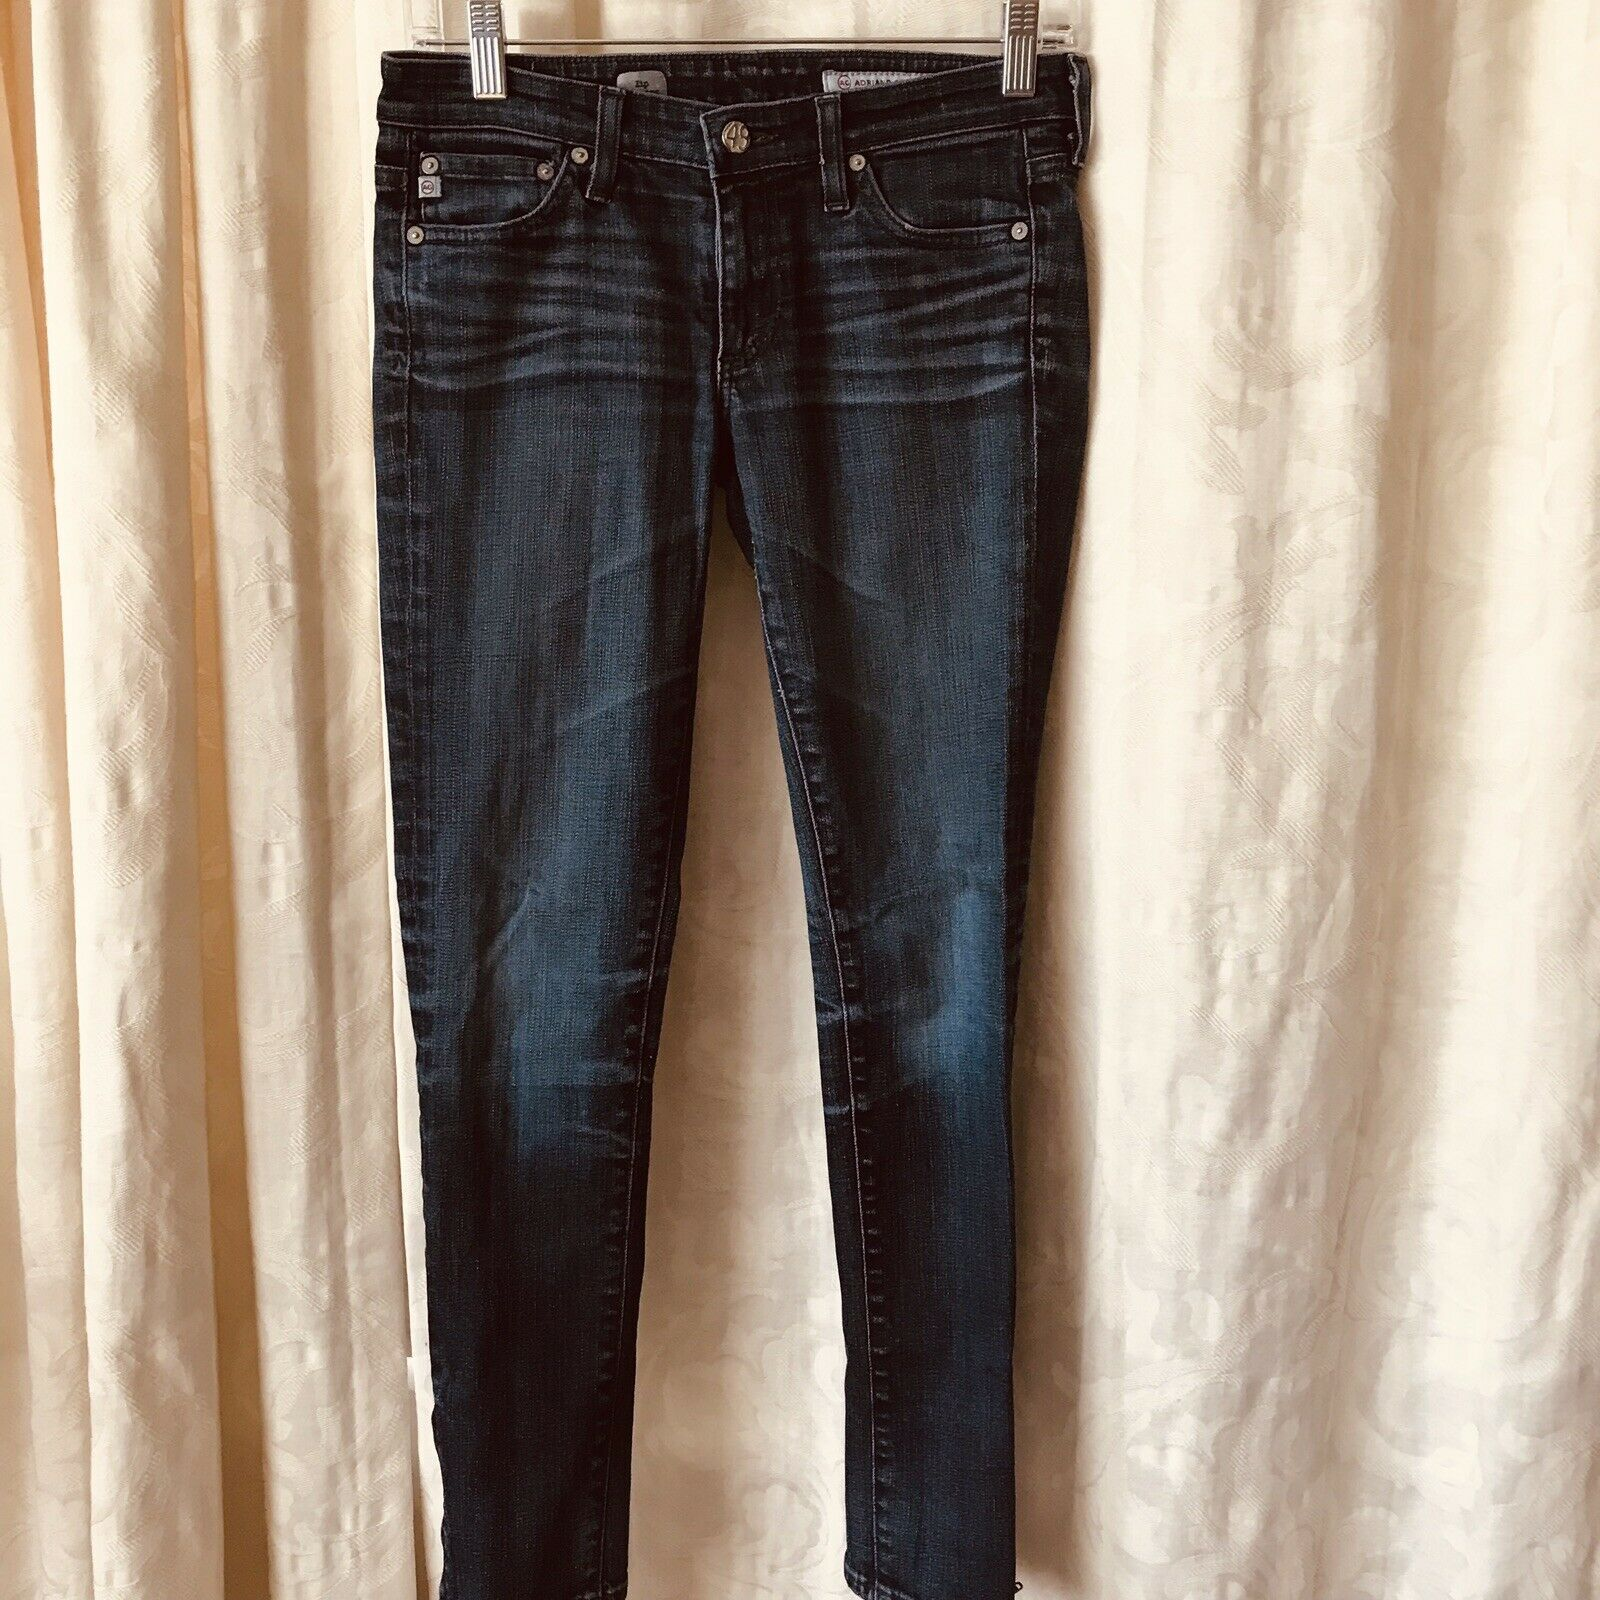 AG Adriano goldschmied Zip Legging Skinny Womens Denim Dark bluee Jeans 26 x 28